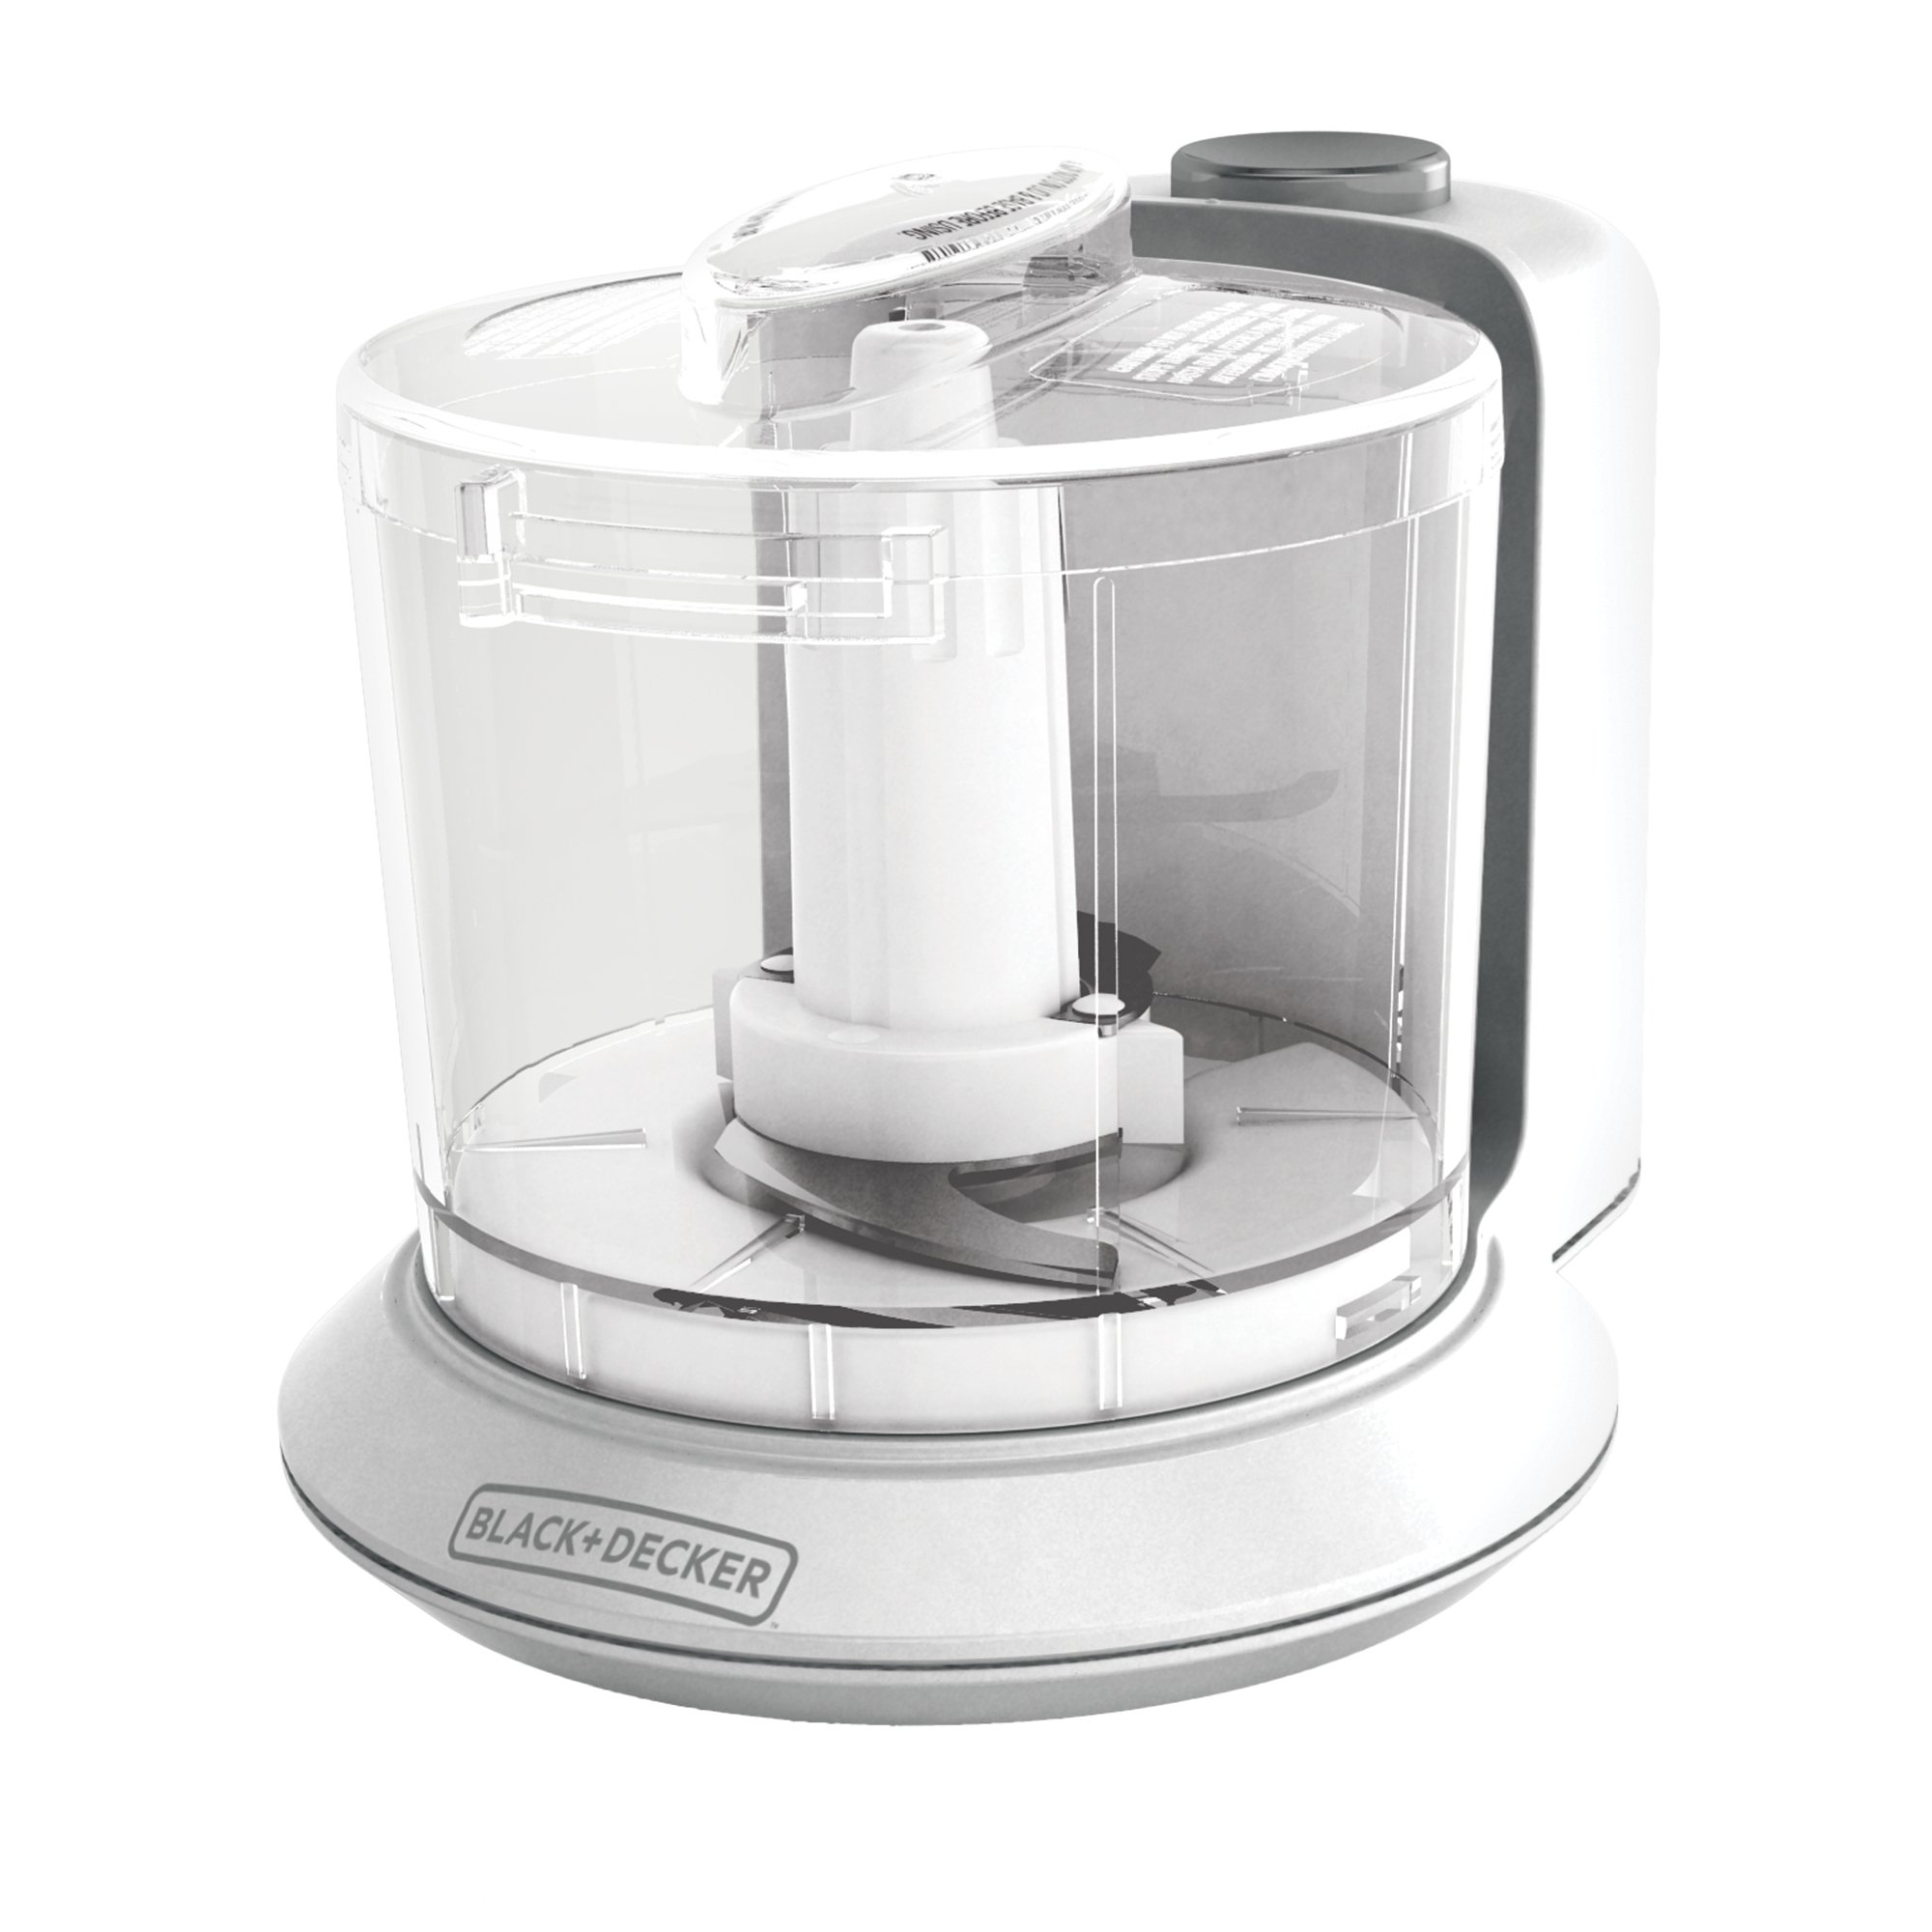 BLACK+DECKER 1.5-Cup Electric Food Chopper, White, HC306C